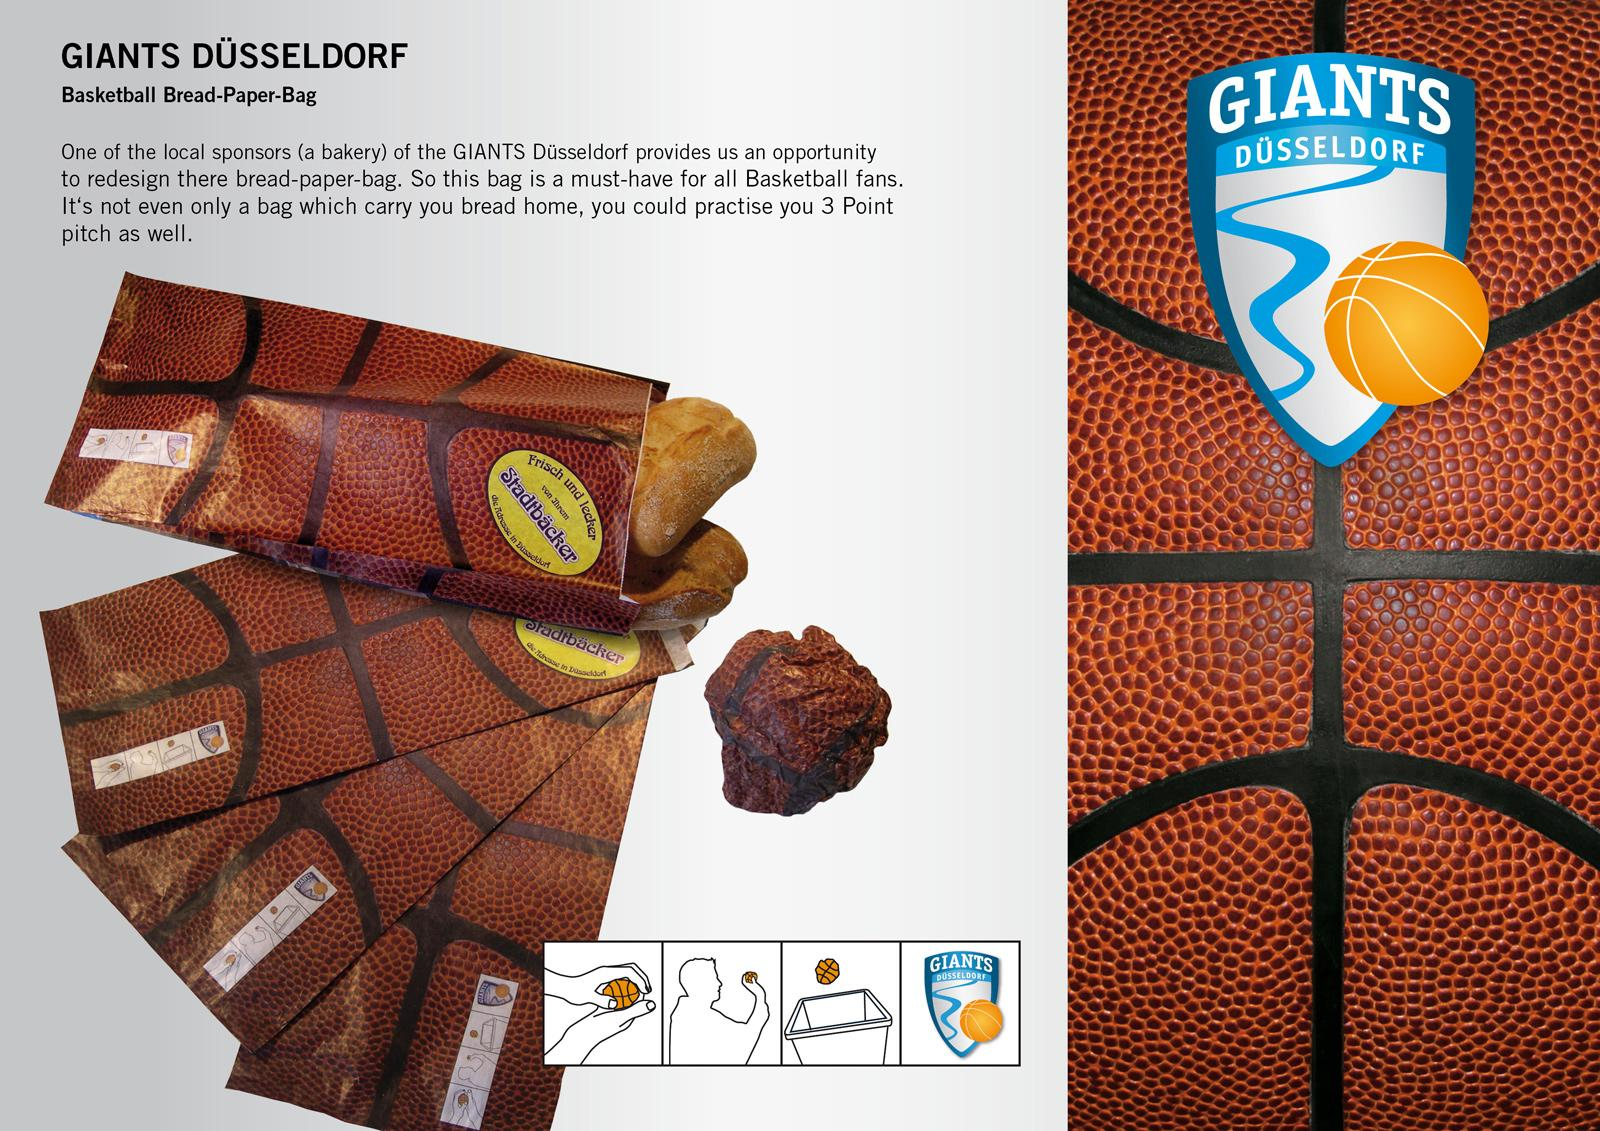 Giants Direct Ad -  Basketball Bread-Paper-Bag